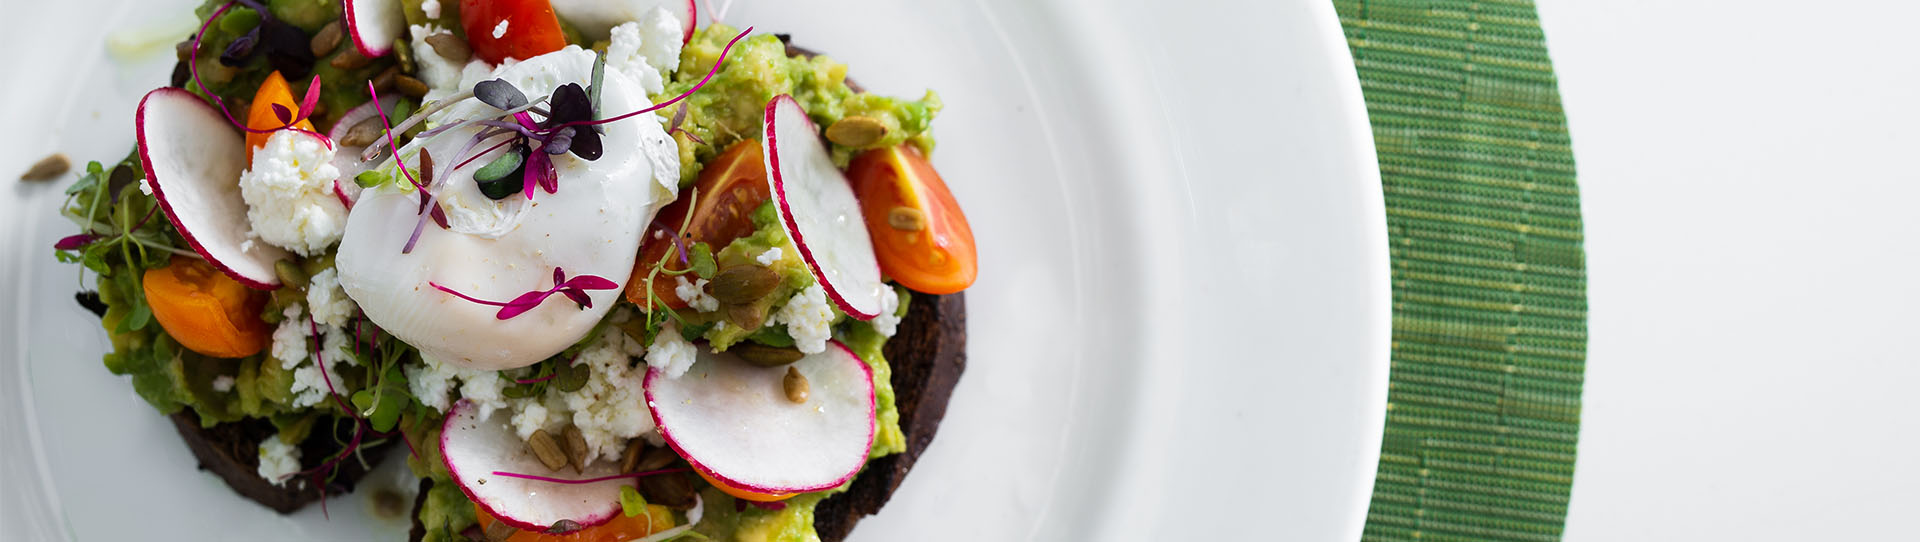 Best Restaurants in Honolulu | Waikiki Fine Dining at The Modern